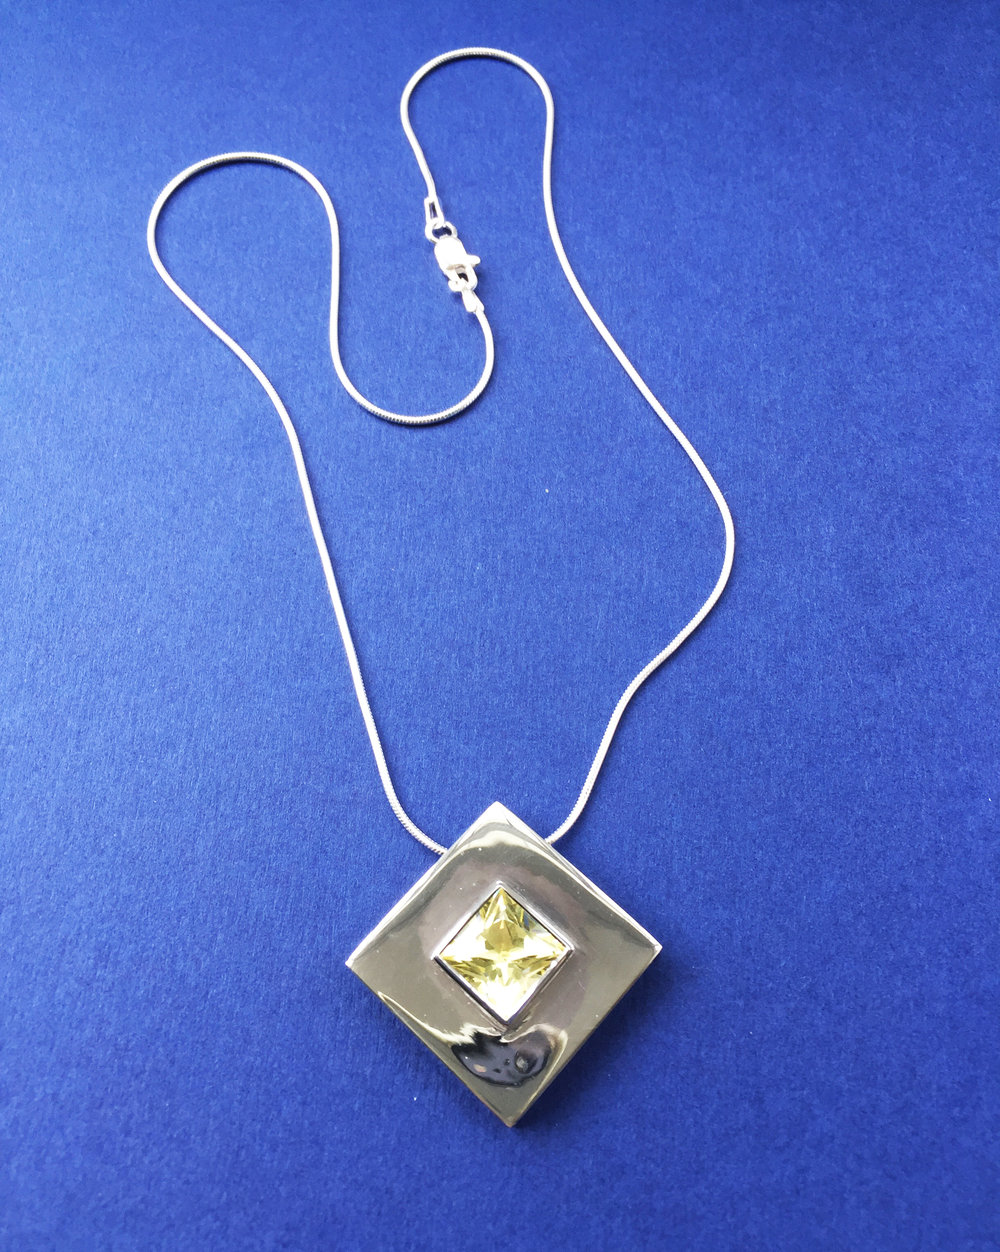 35. necklace.jpg